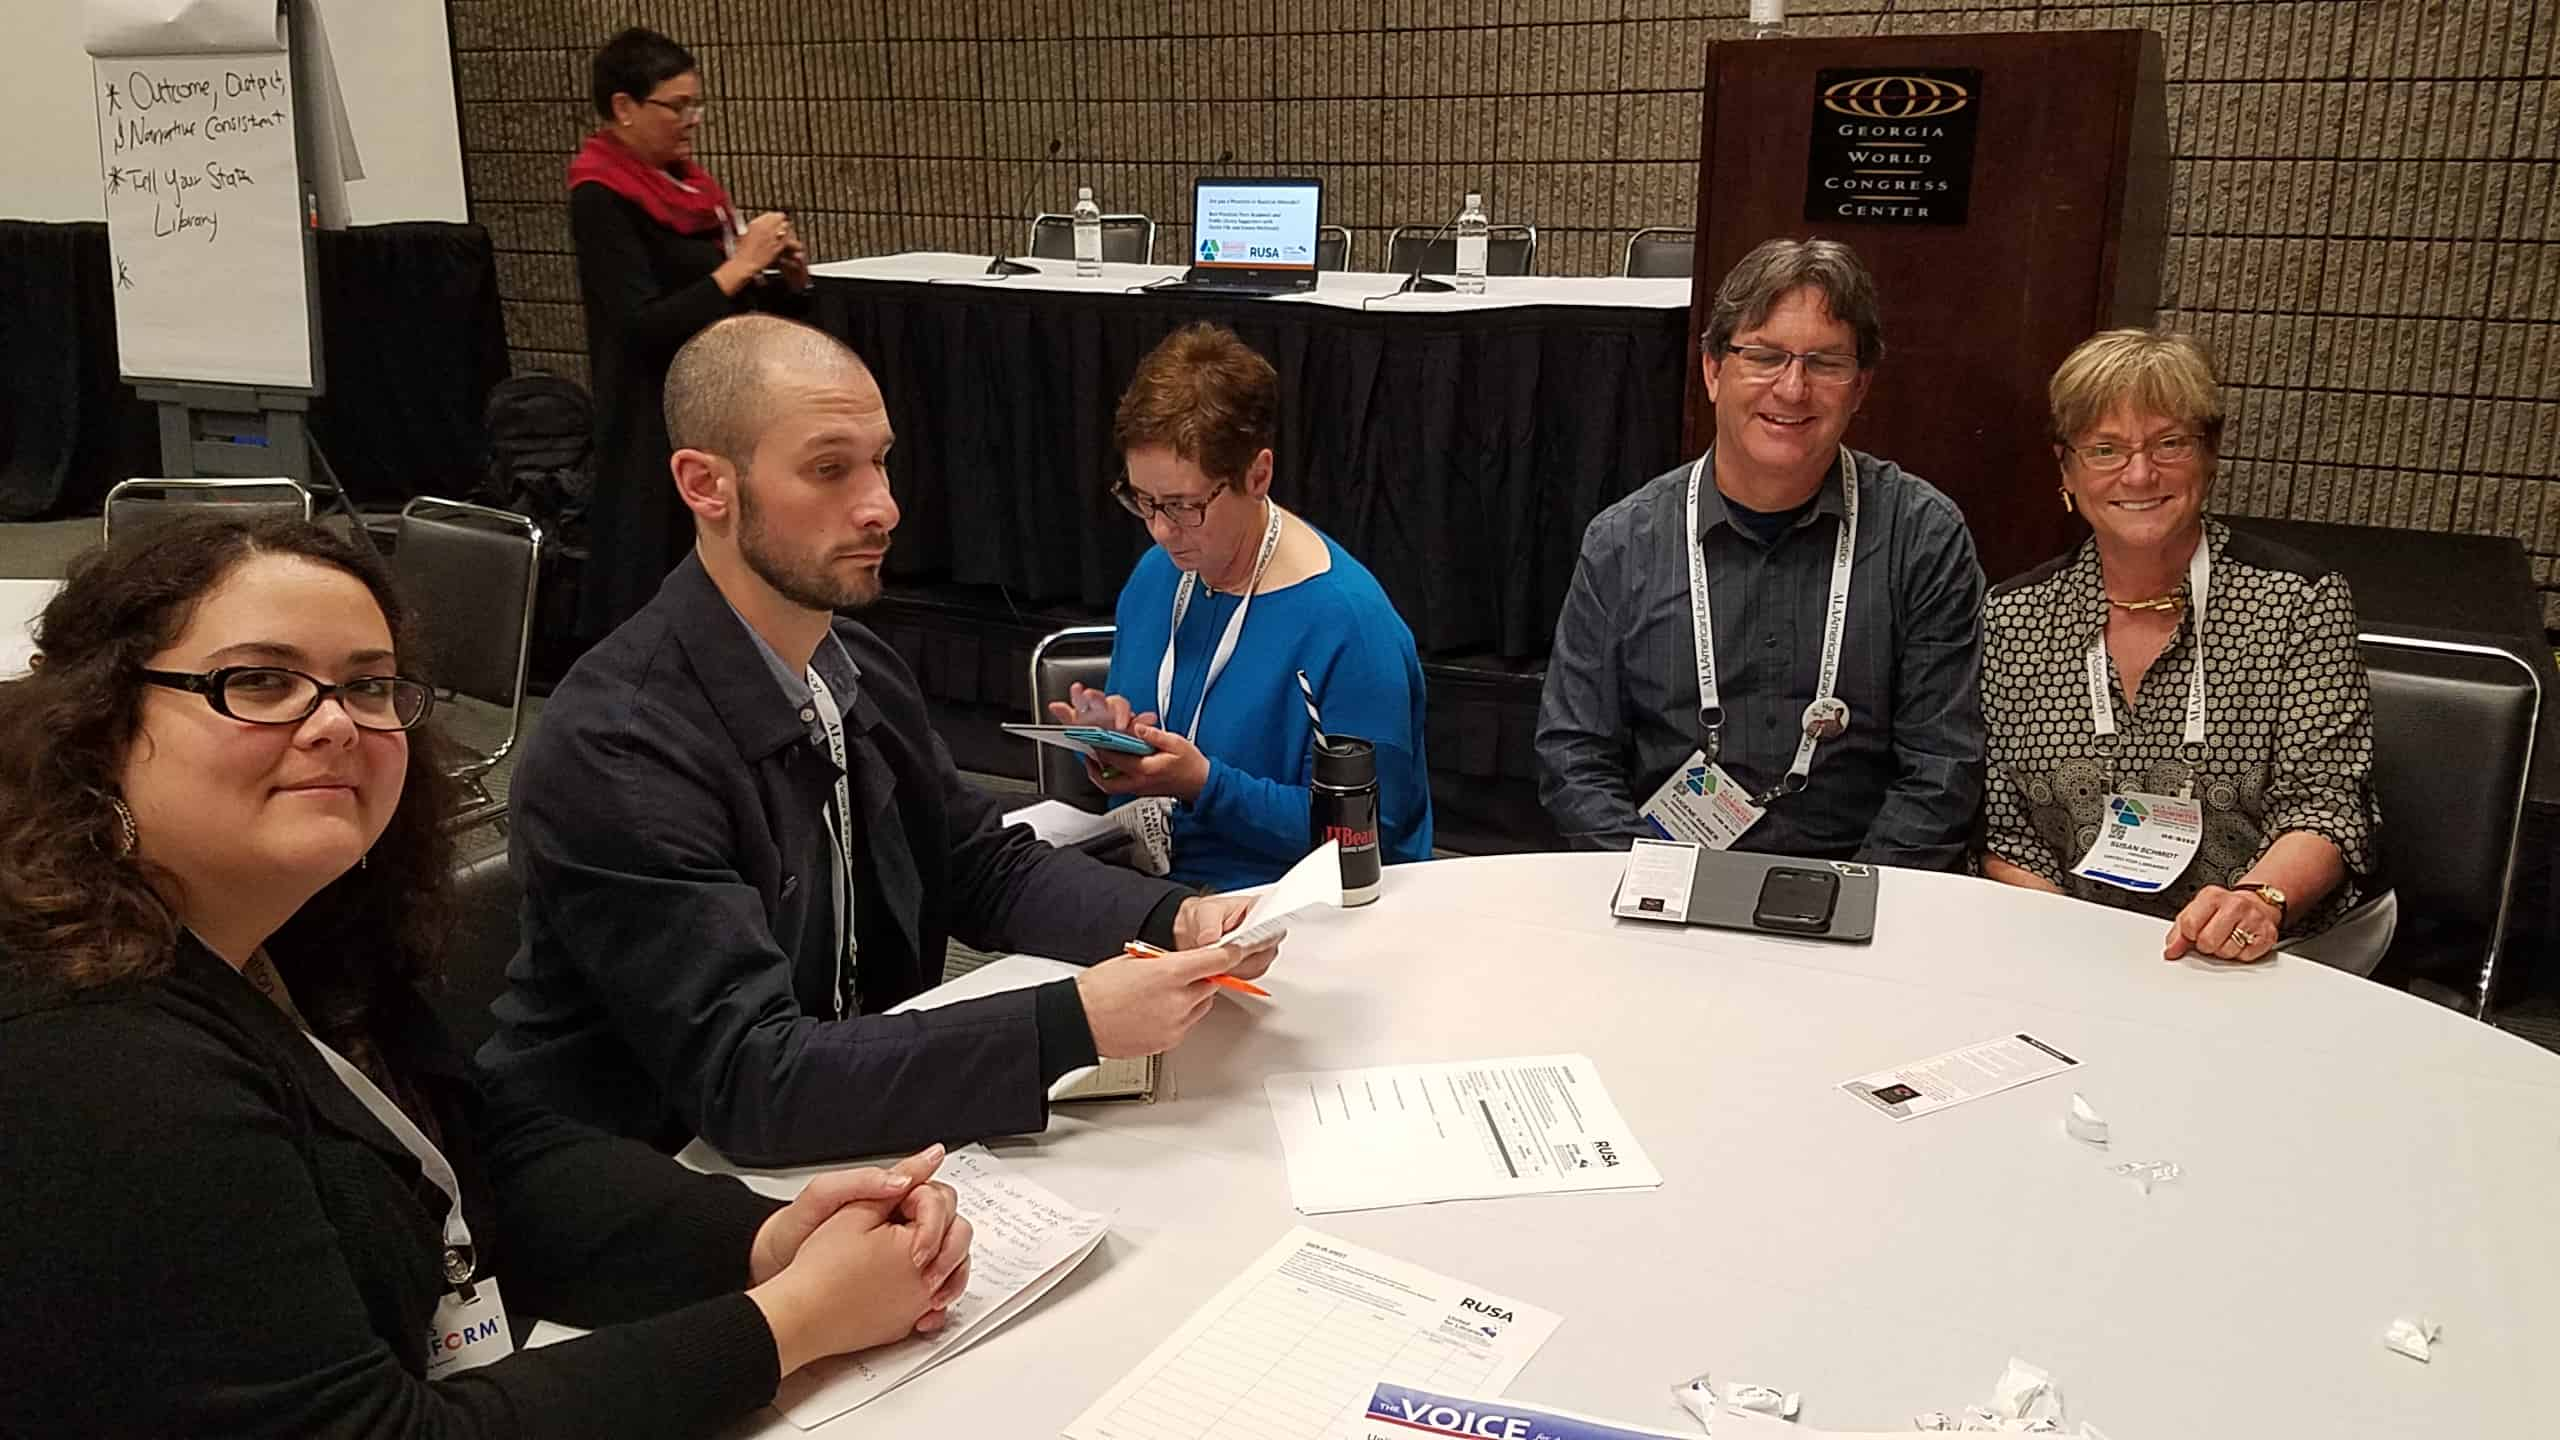 One of the breakout groups at the advocacy meeting. From left: Casey Wallace, Christopher Moffat, Elissa Checov (a 2016 I Love My Librarian winner), Eugene Hamer, and Susan J. Schmidt (United for Libraries president). In the background is Donna McDonald (United for Libraries secretary).